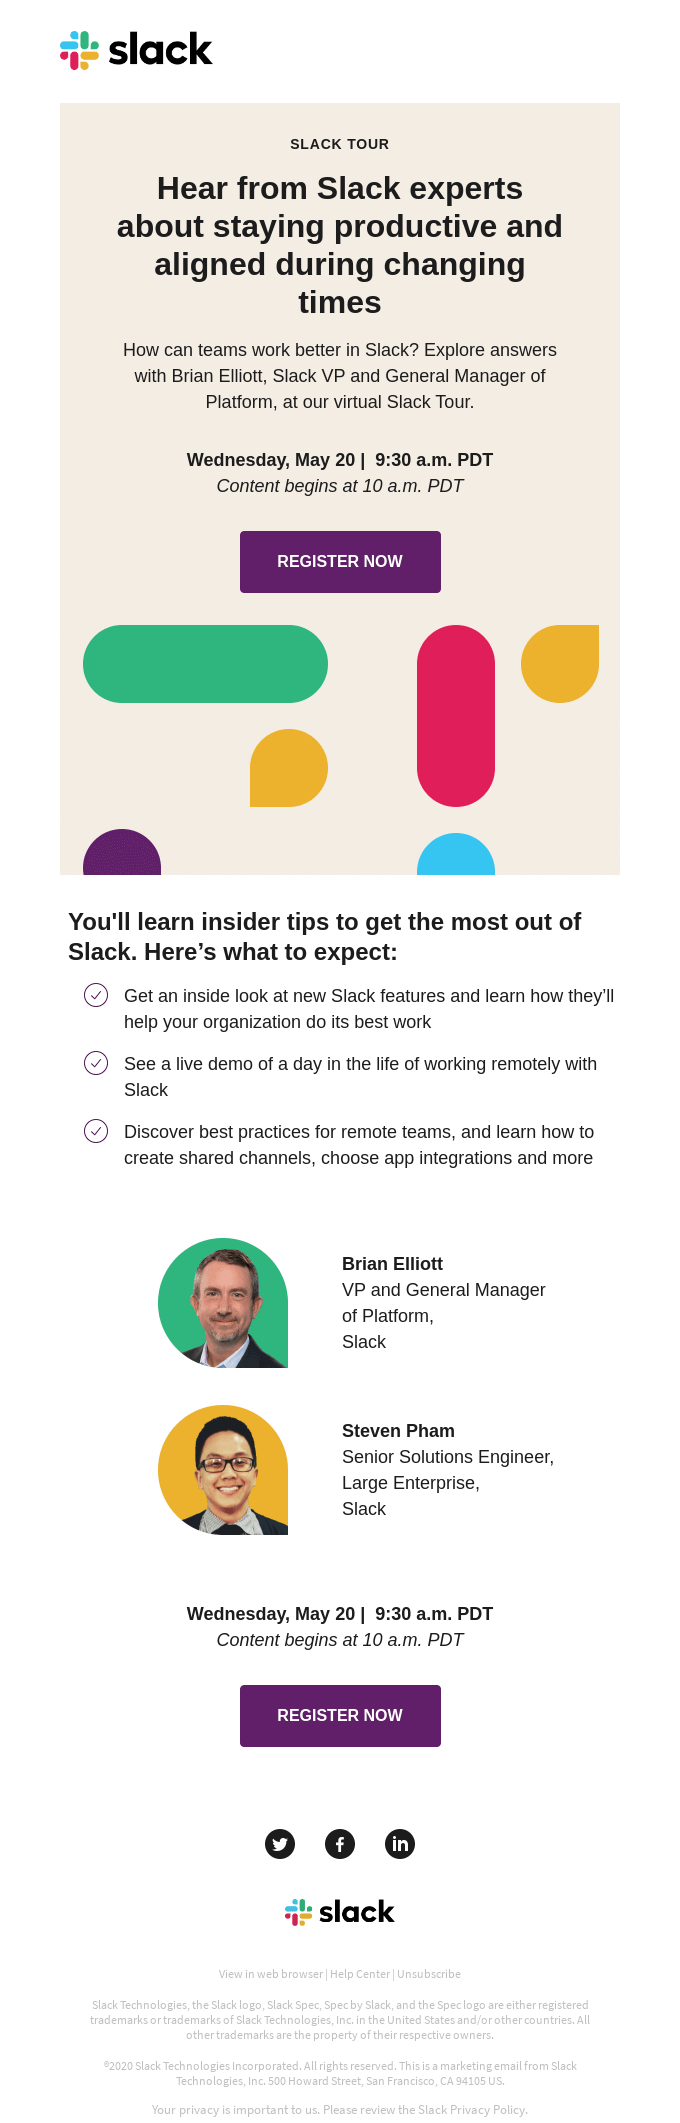 What customers like you will take away from Slack Tour